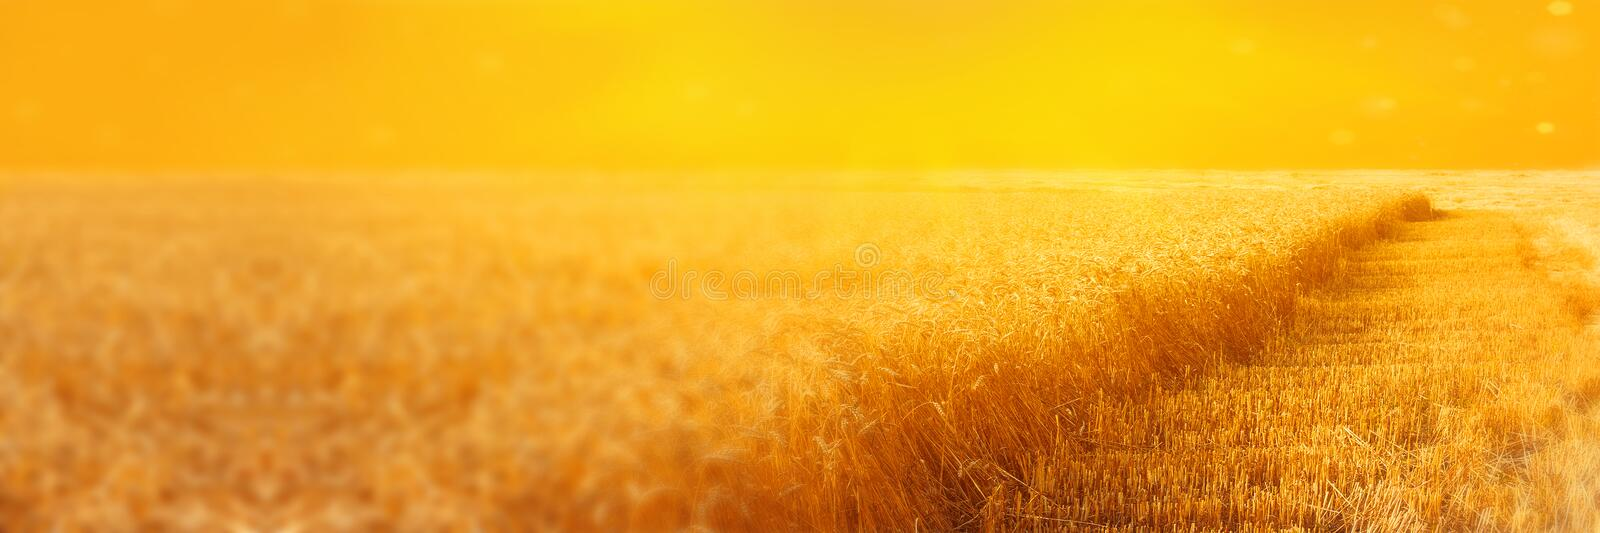 Landscape of rye field with beveled strips during harvesting at sunset. Summer agriculture rural background. Panoramic image royalty free illustration